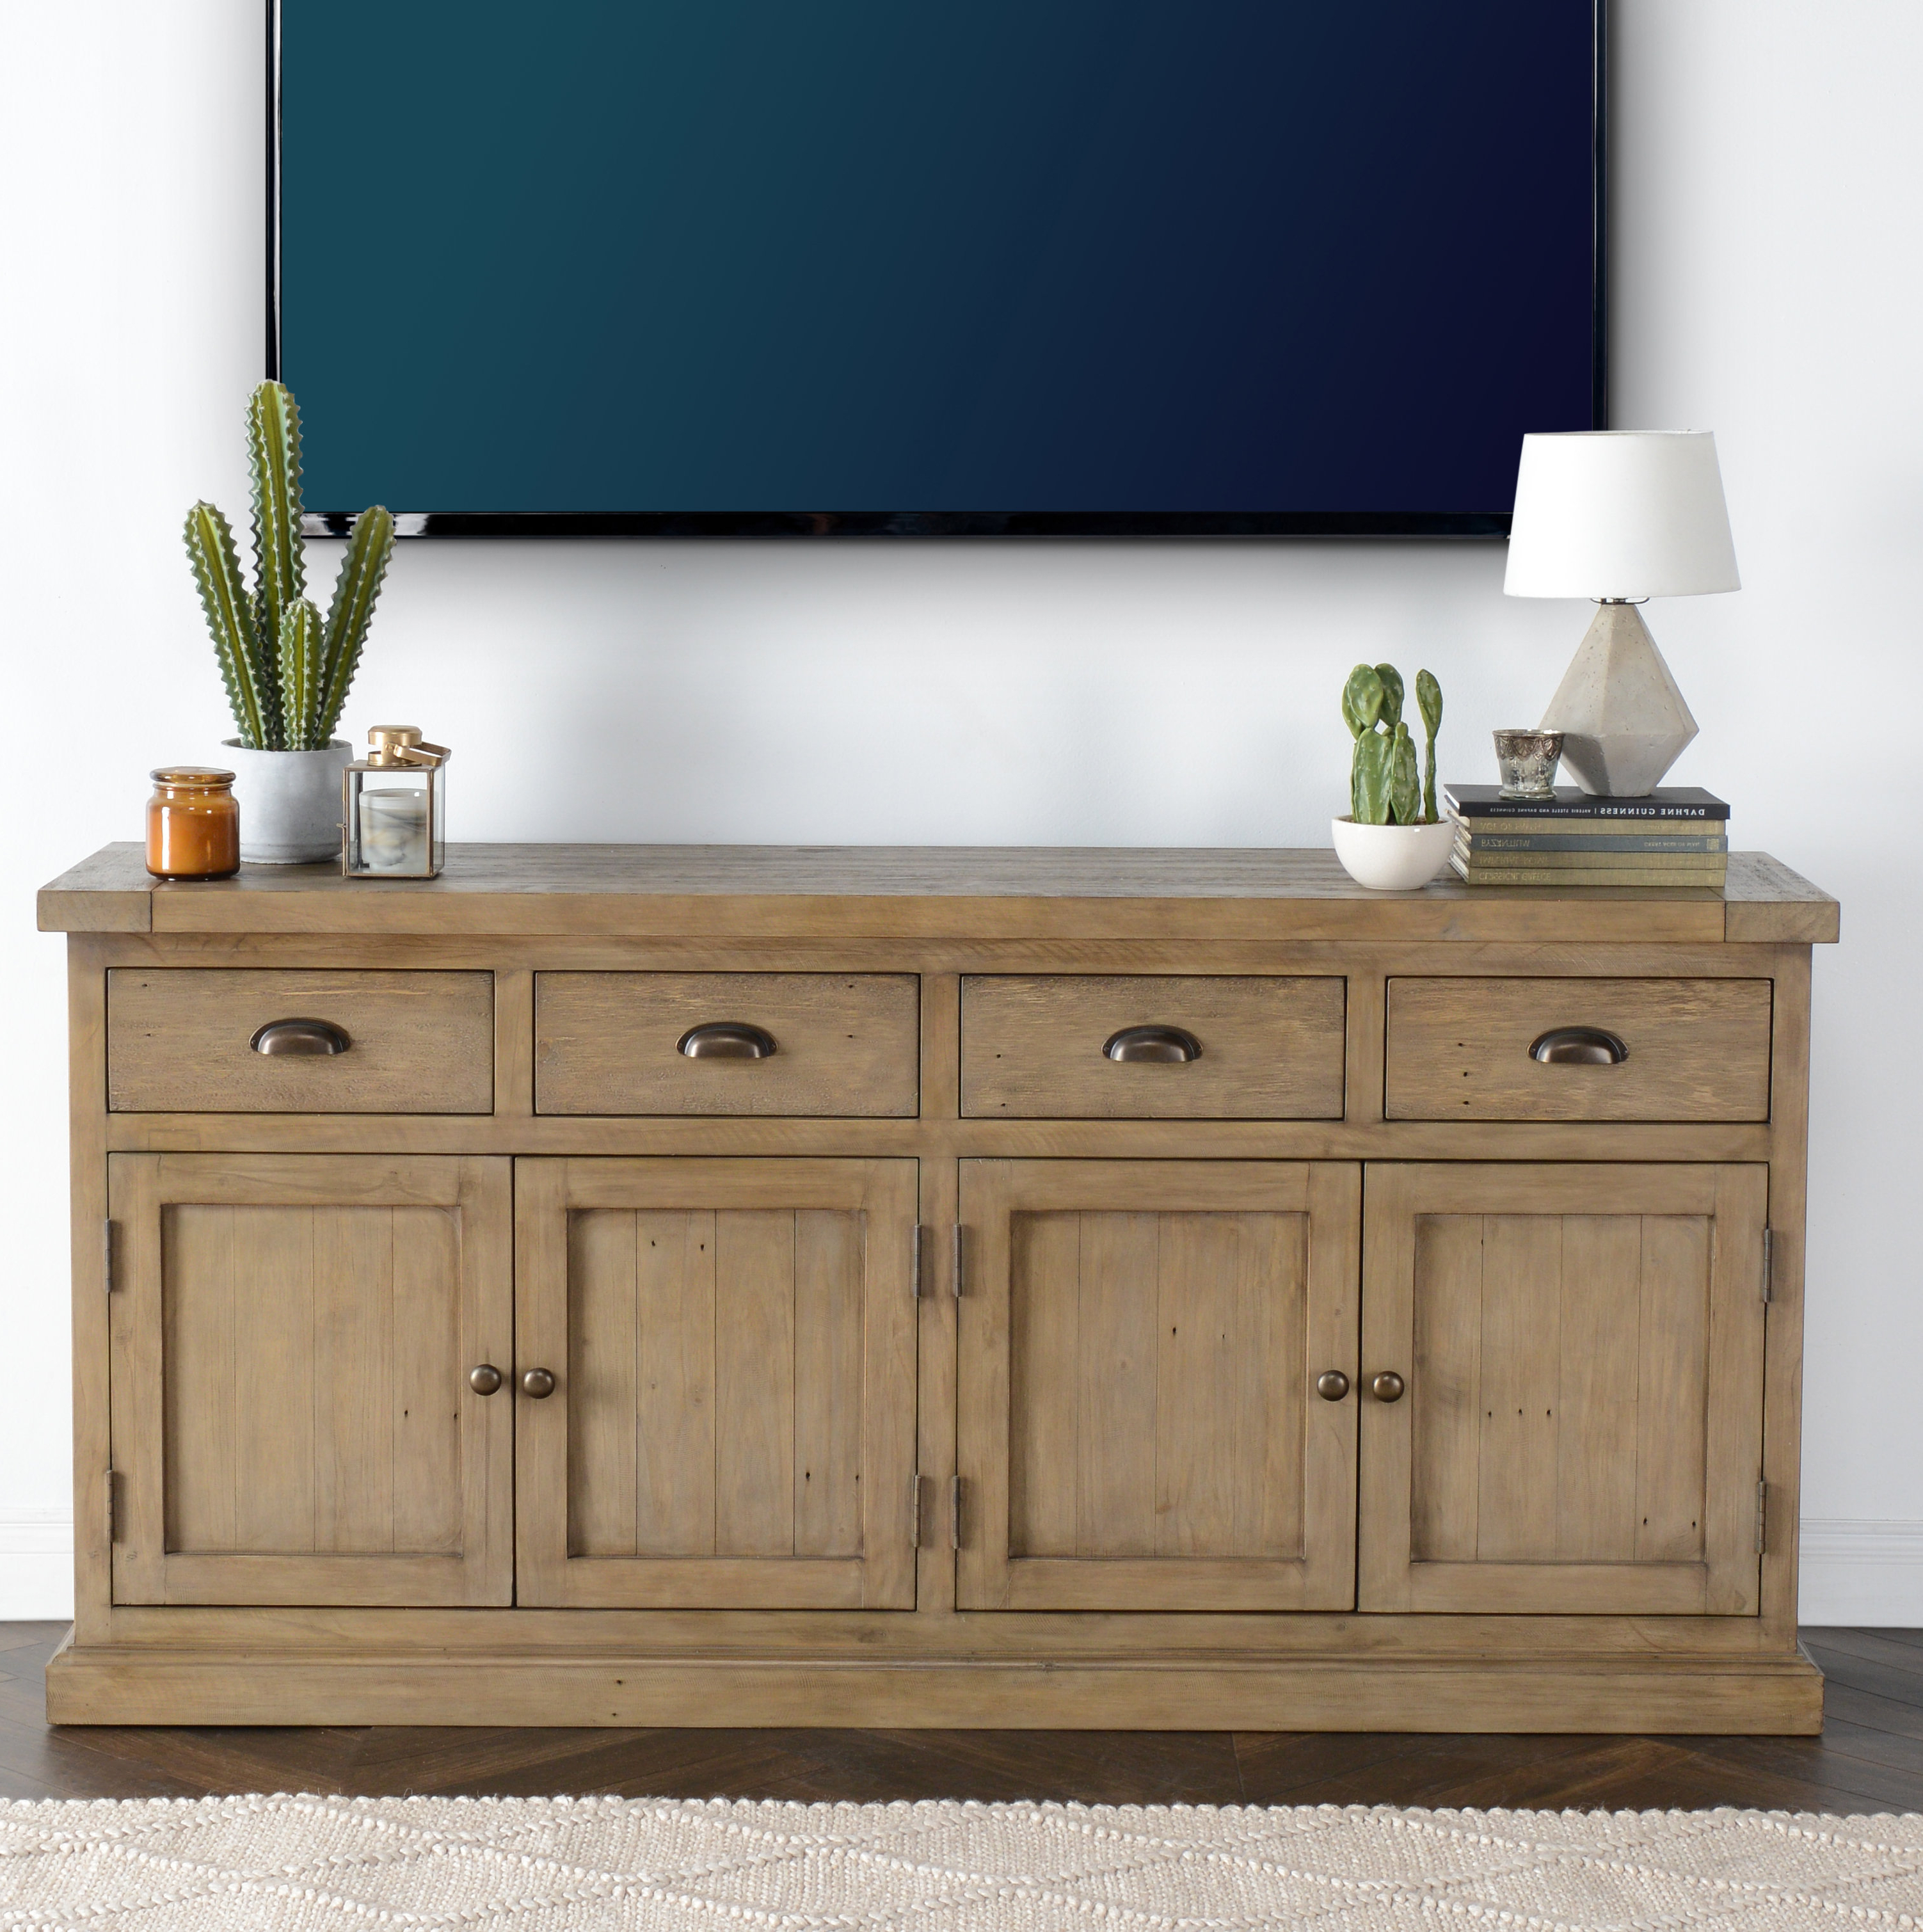 Lainey Credenzas With Best And Newest Gertrude Sideboard (View 5 of 20)